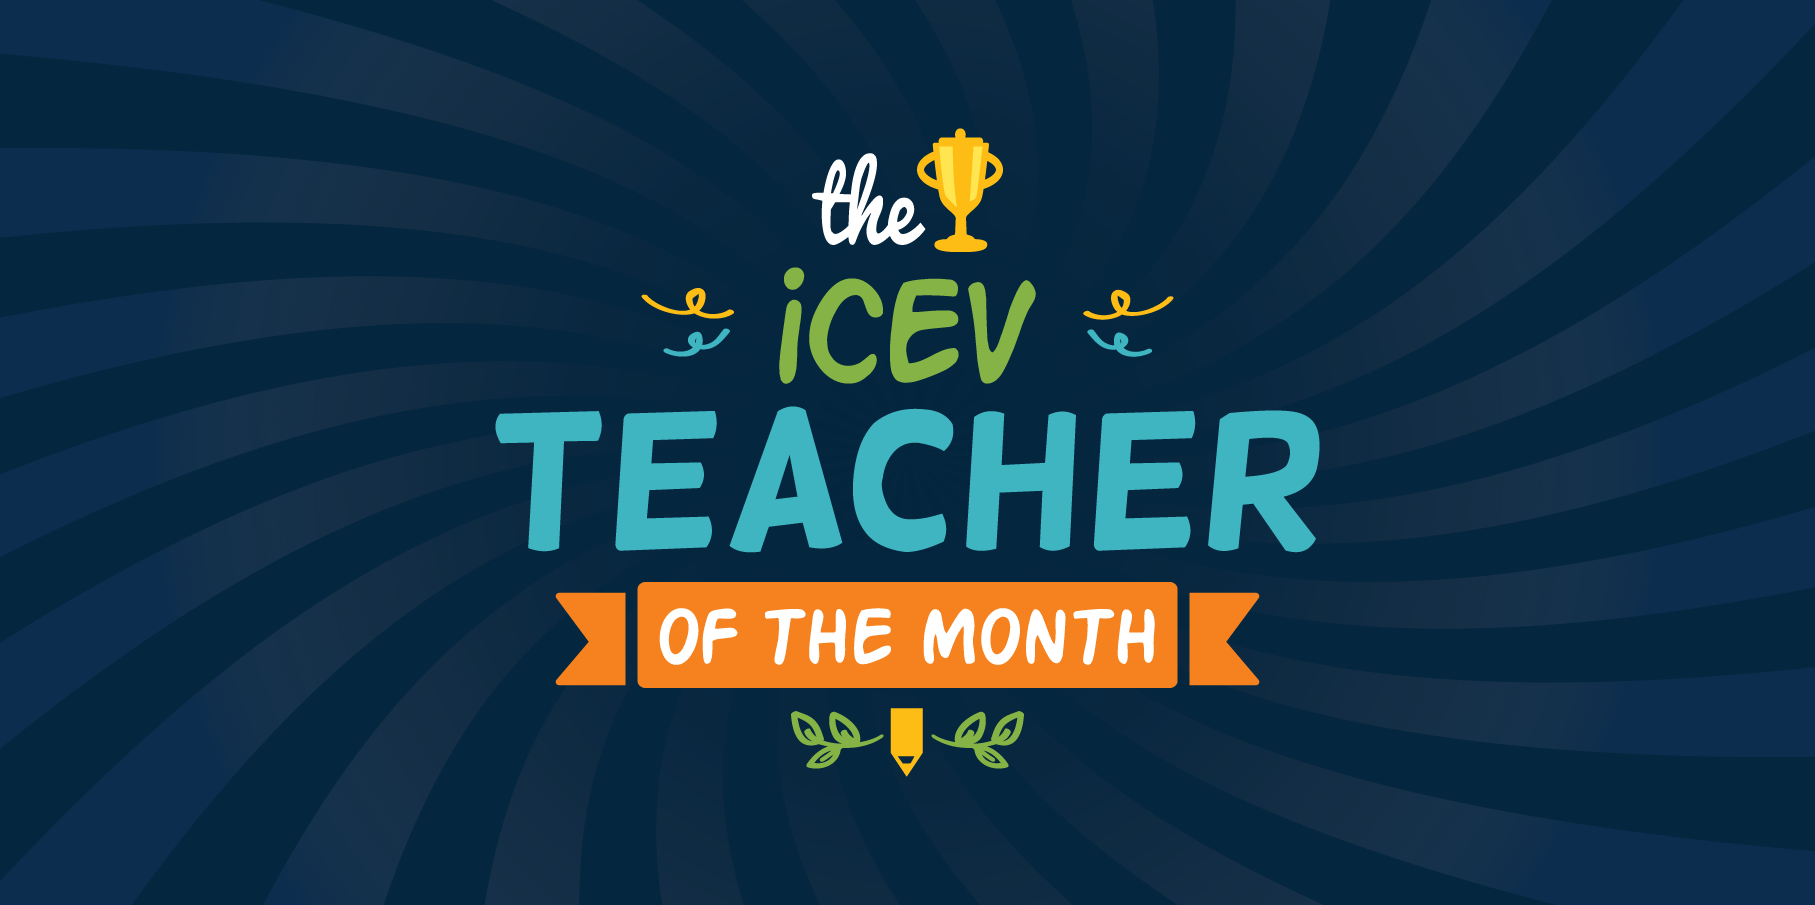 Each month, we spotlight a teacher helping students be successful by using innovative and outstanding teaching methods.